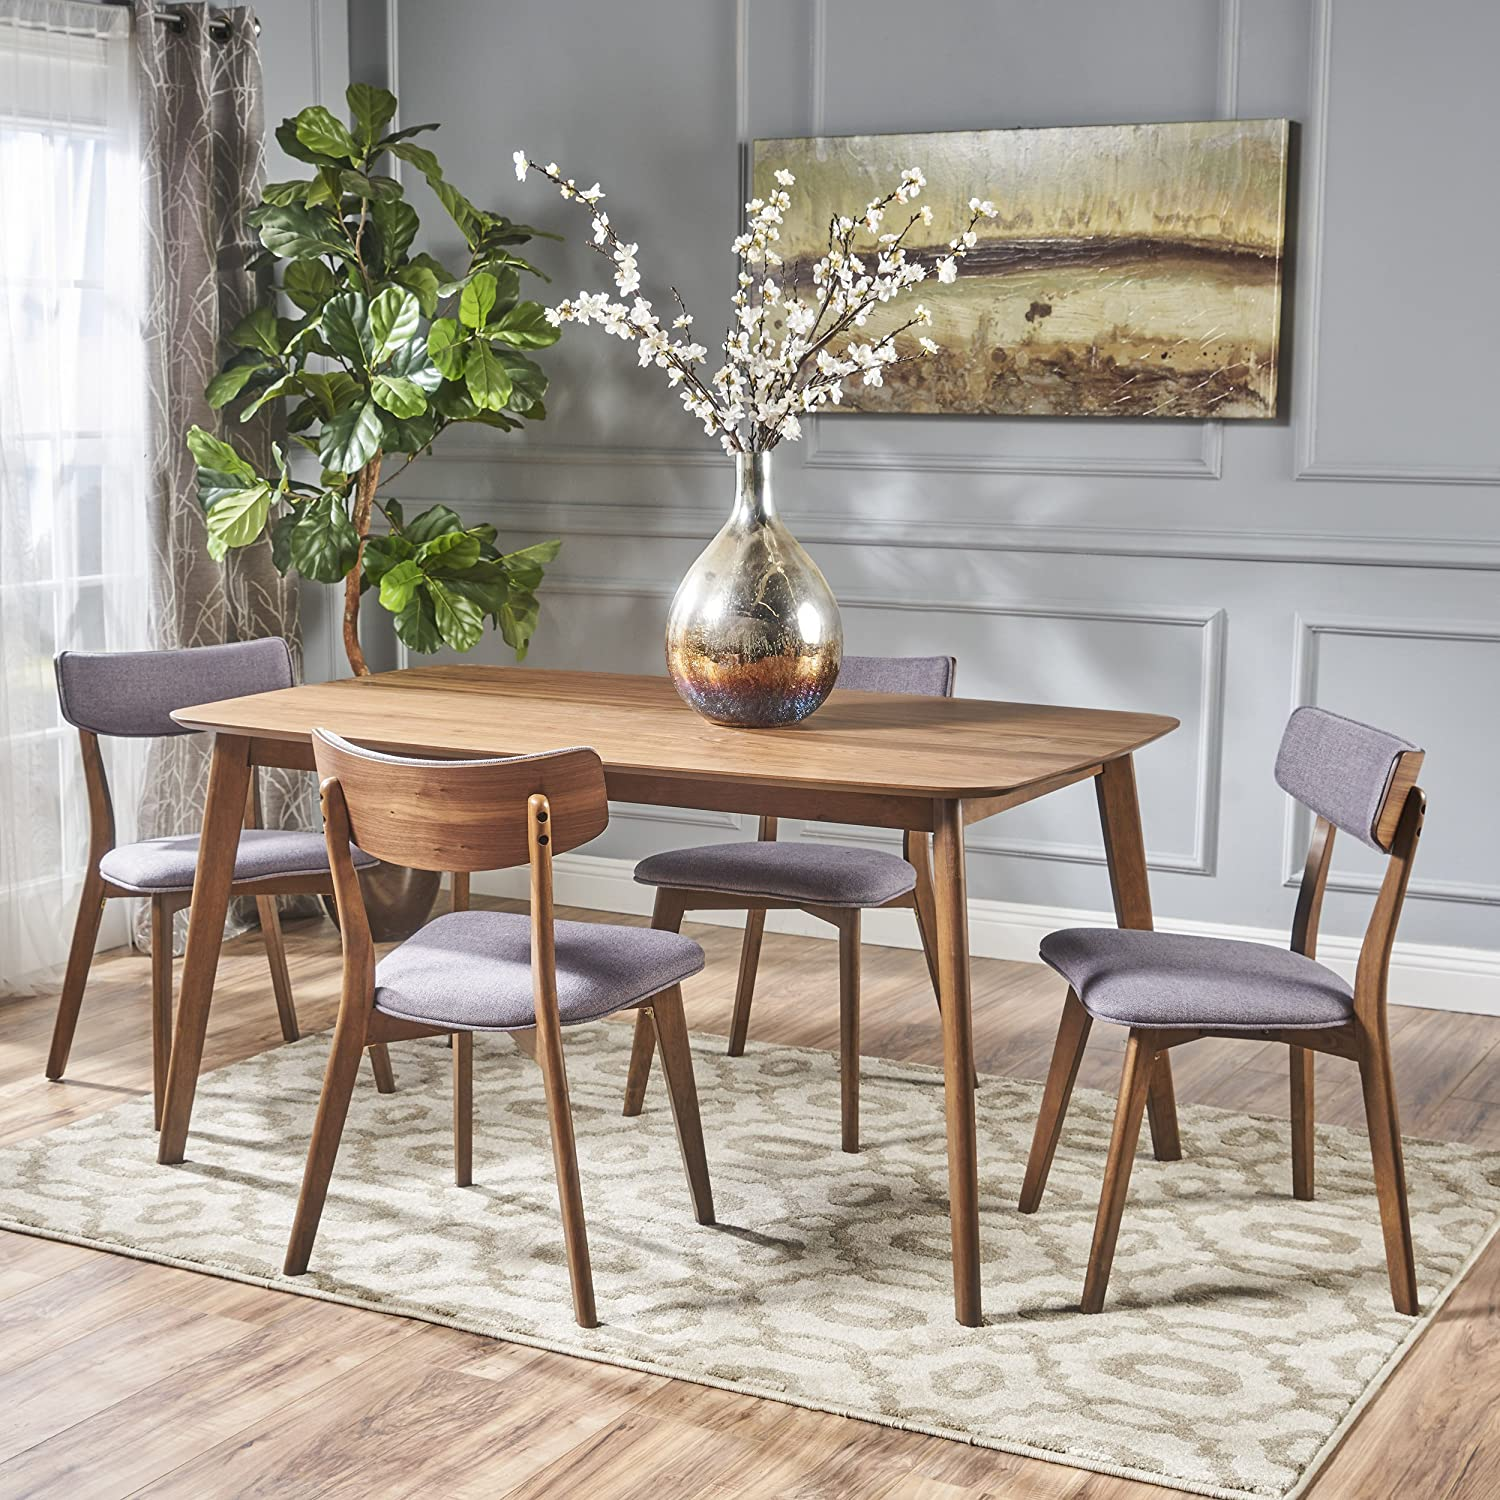 Aman Mid Century Natural Walnut Finished 5 Piece Wood Dining Set with Dark Grey Fabric Chairs